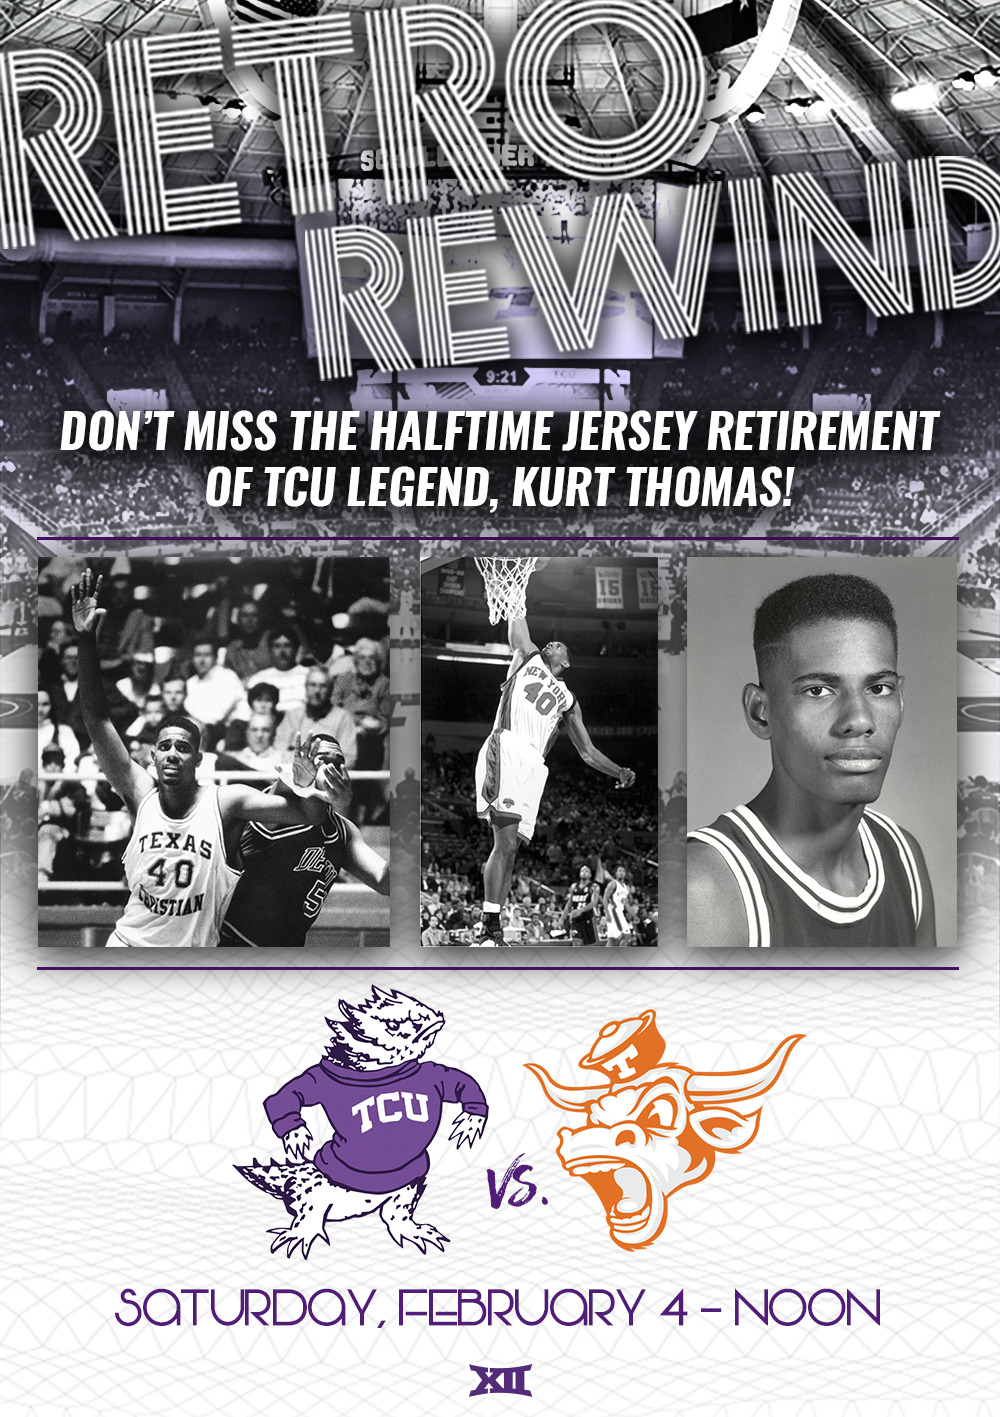 34b2b472fc0 Make sure to be in your seats at halftime as we retire the jersey of TCU  basketball legend Kurt Thomas!